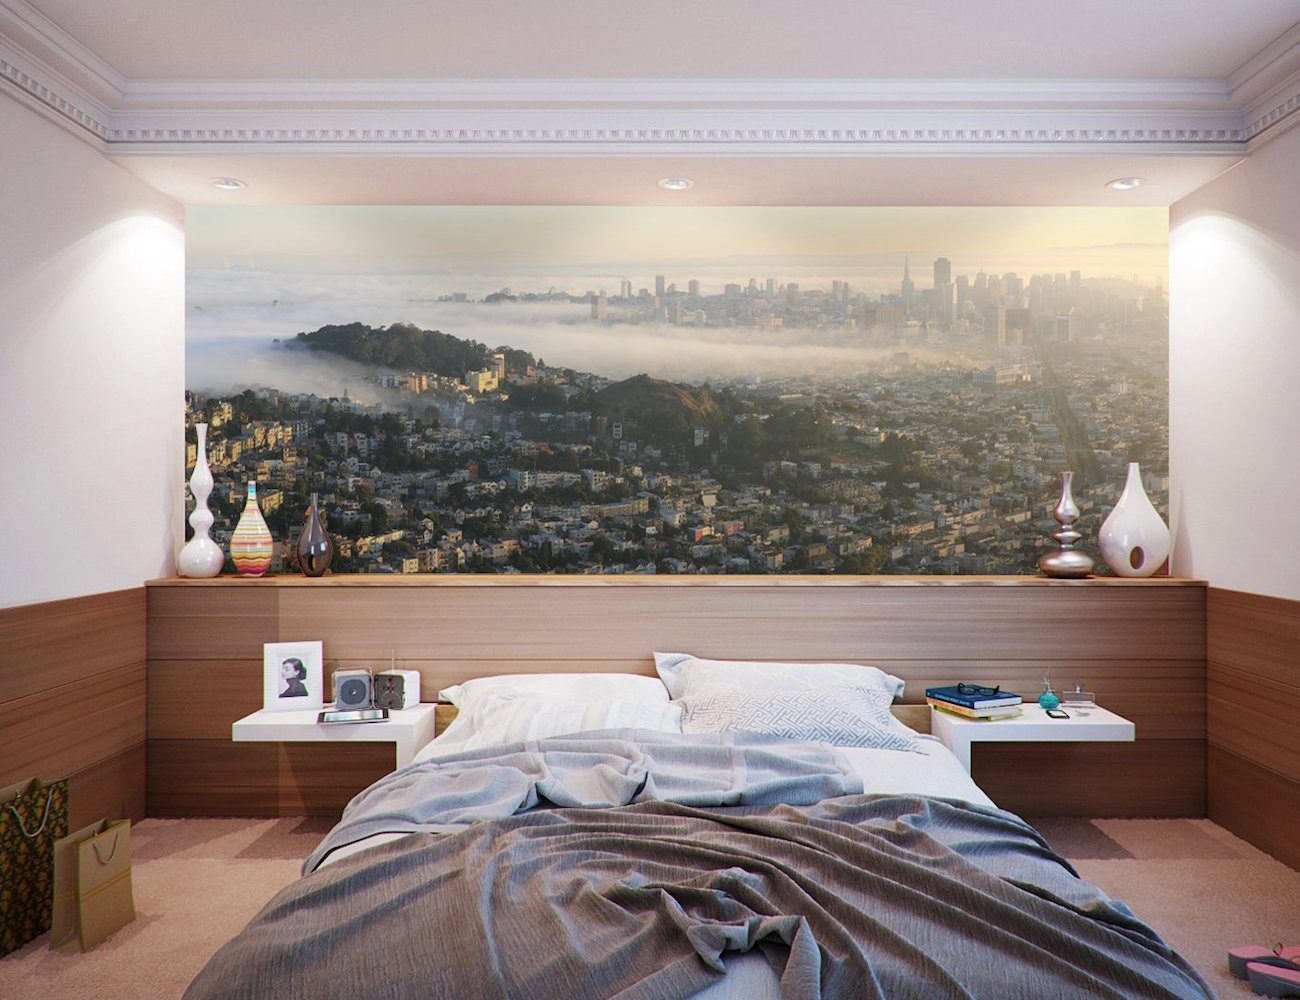 san francisco panoramic skyline wall mural by eazywallz san francisco aerial wall mural landiscor real estate